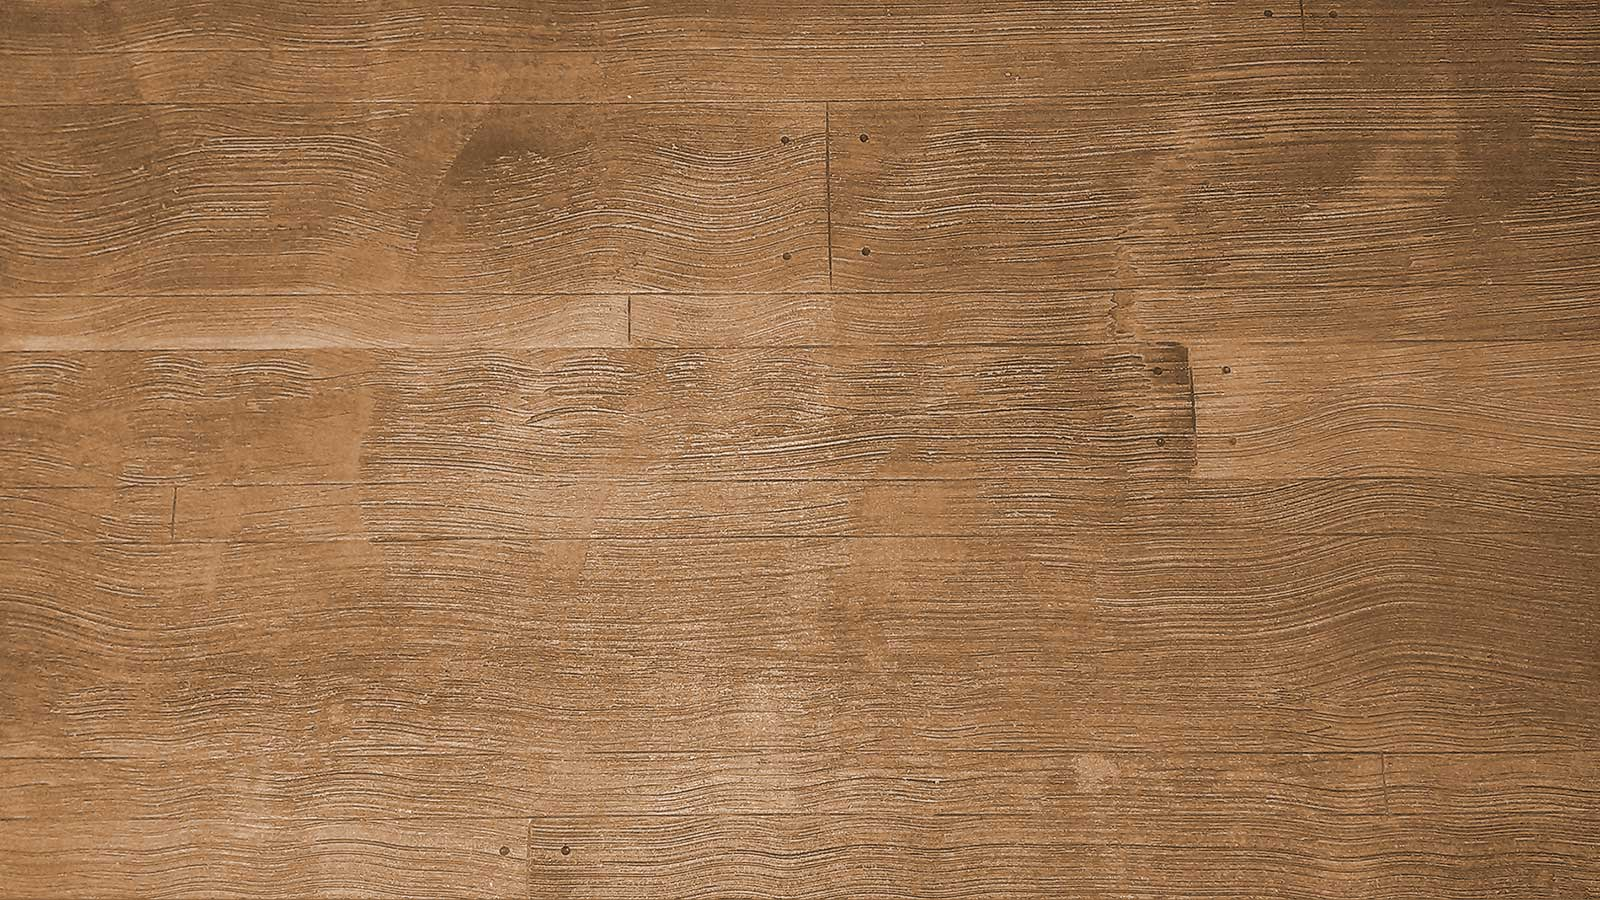 Woodcrete Concrete Surface With The Look Of Wood